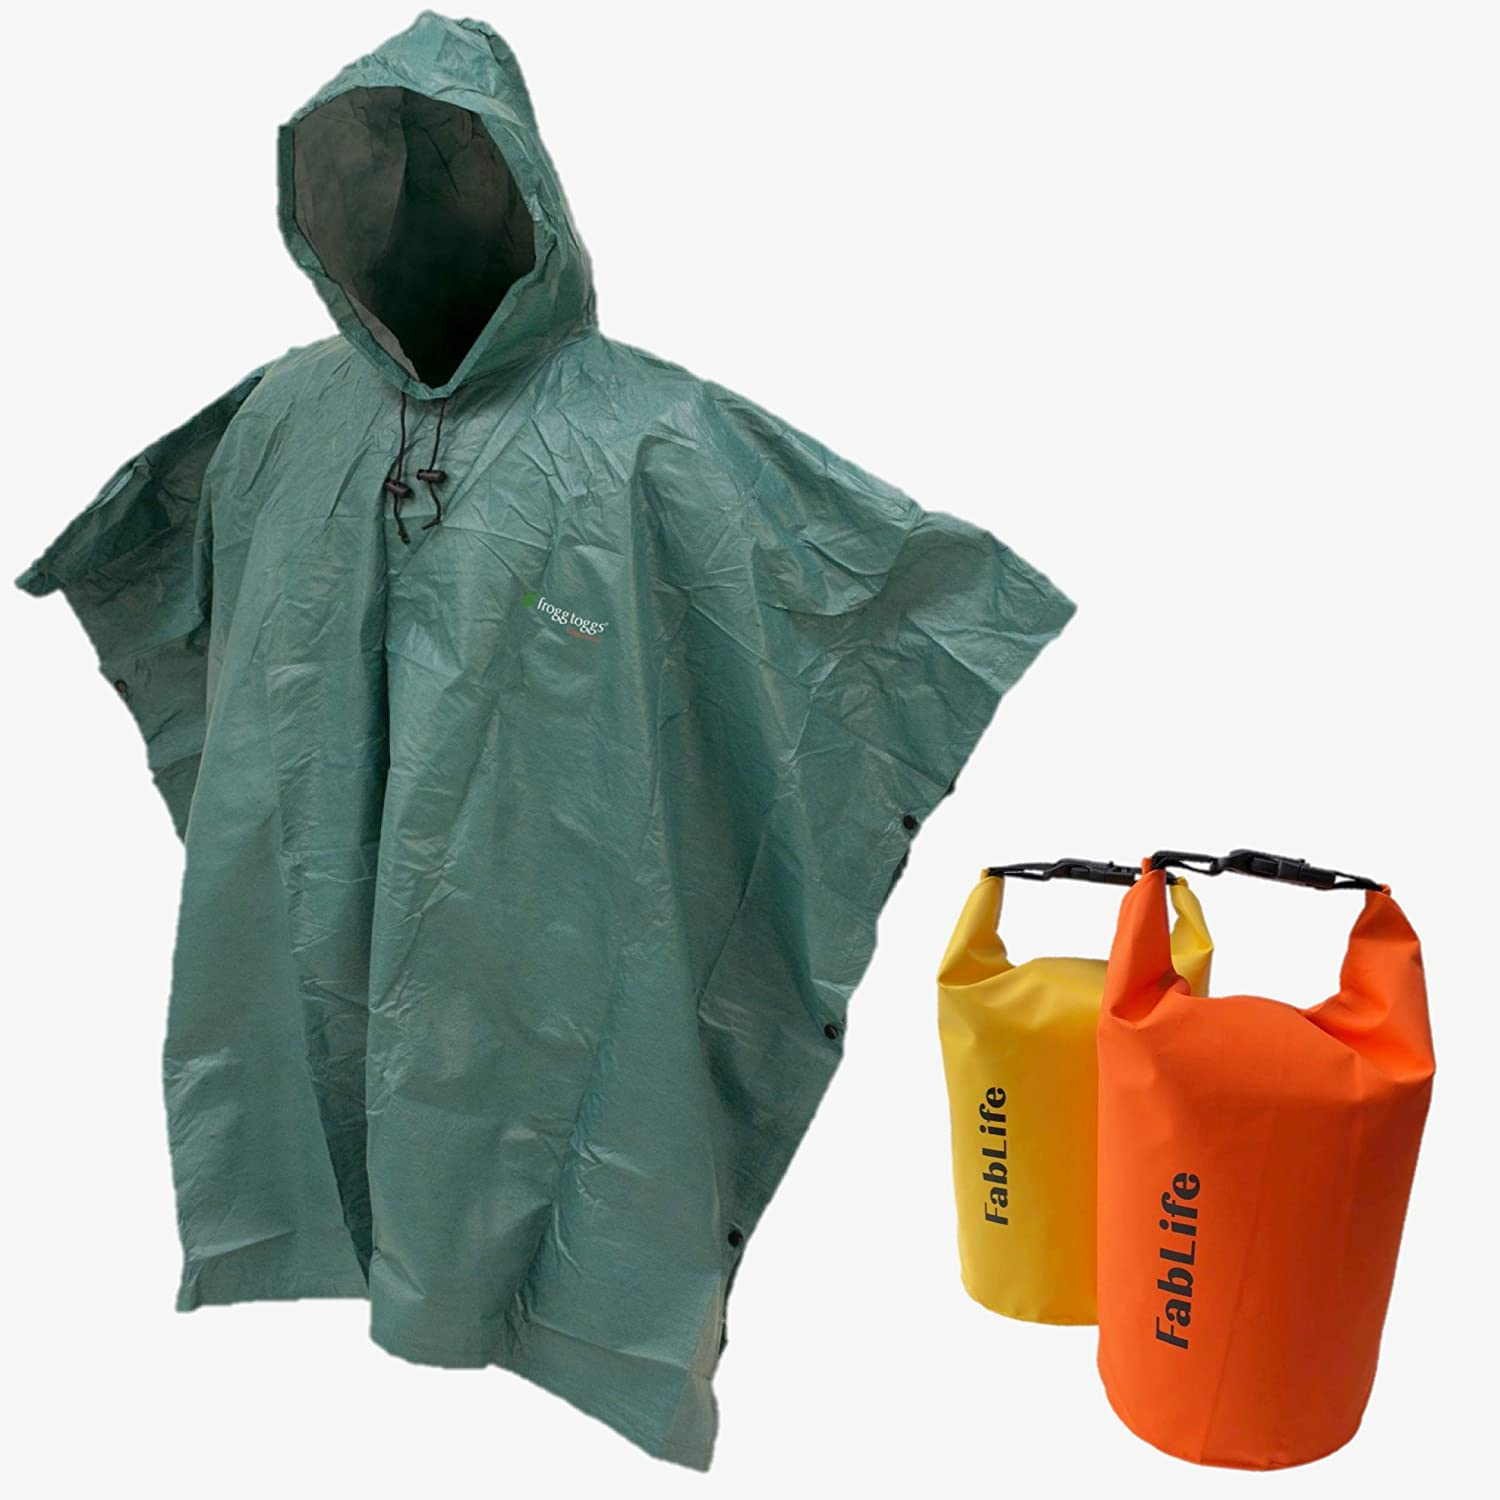 8c414ab9 Amazon.com : Frogg Toggs Ultra-Lite Packable Poncho and 2 Floating  Waterproof Dry Bags Bundle : Sports & Outdoors